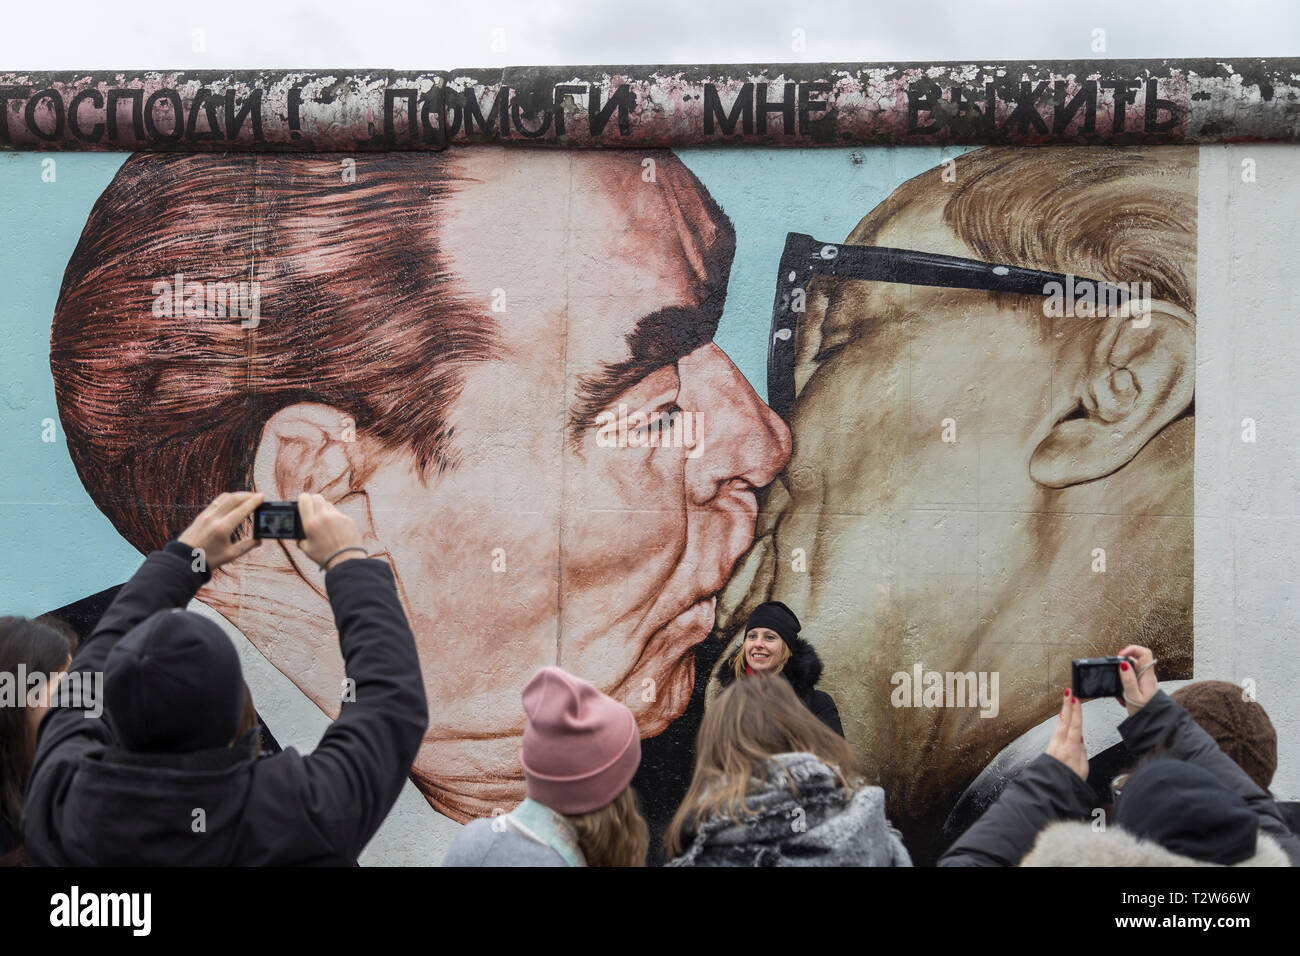 """Tourists at the """"My God, Help Me to Survive This Deadly Love"""" (or """"Fraternal Kiss"""") mural painting by Dmitri Vrubel at the East Side Gallery in Berlin. Stock Photo"""